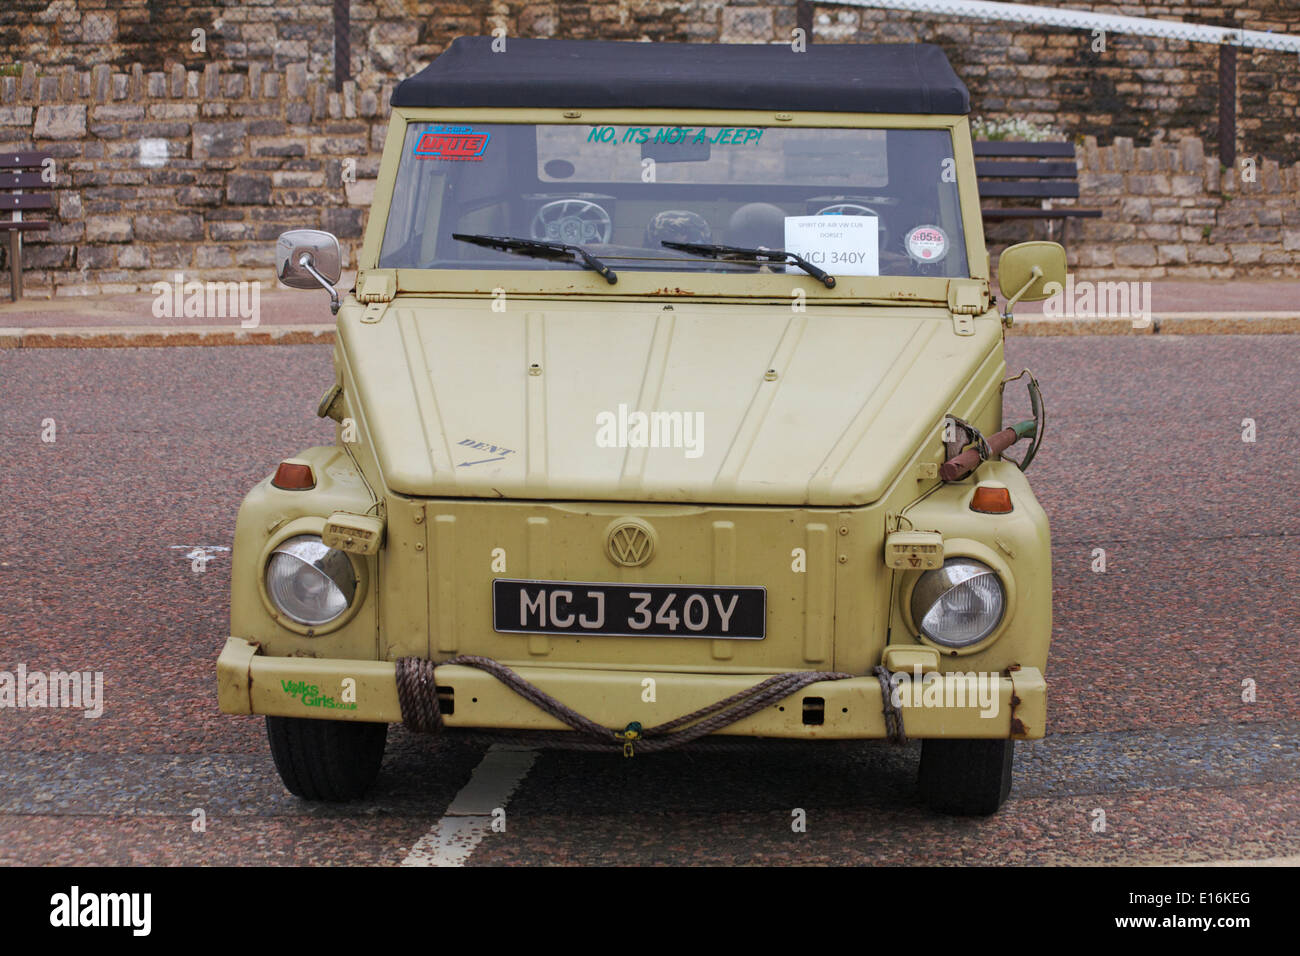 No it's not a jeep - it's a Volkswagen! on display at the first ever Bournemouth Wheels Festival in May. © Carolyn Jenkins/Alamy Live New Credit:  Carolyn Jenkins/Alamy Live News - Stock Image